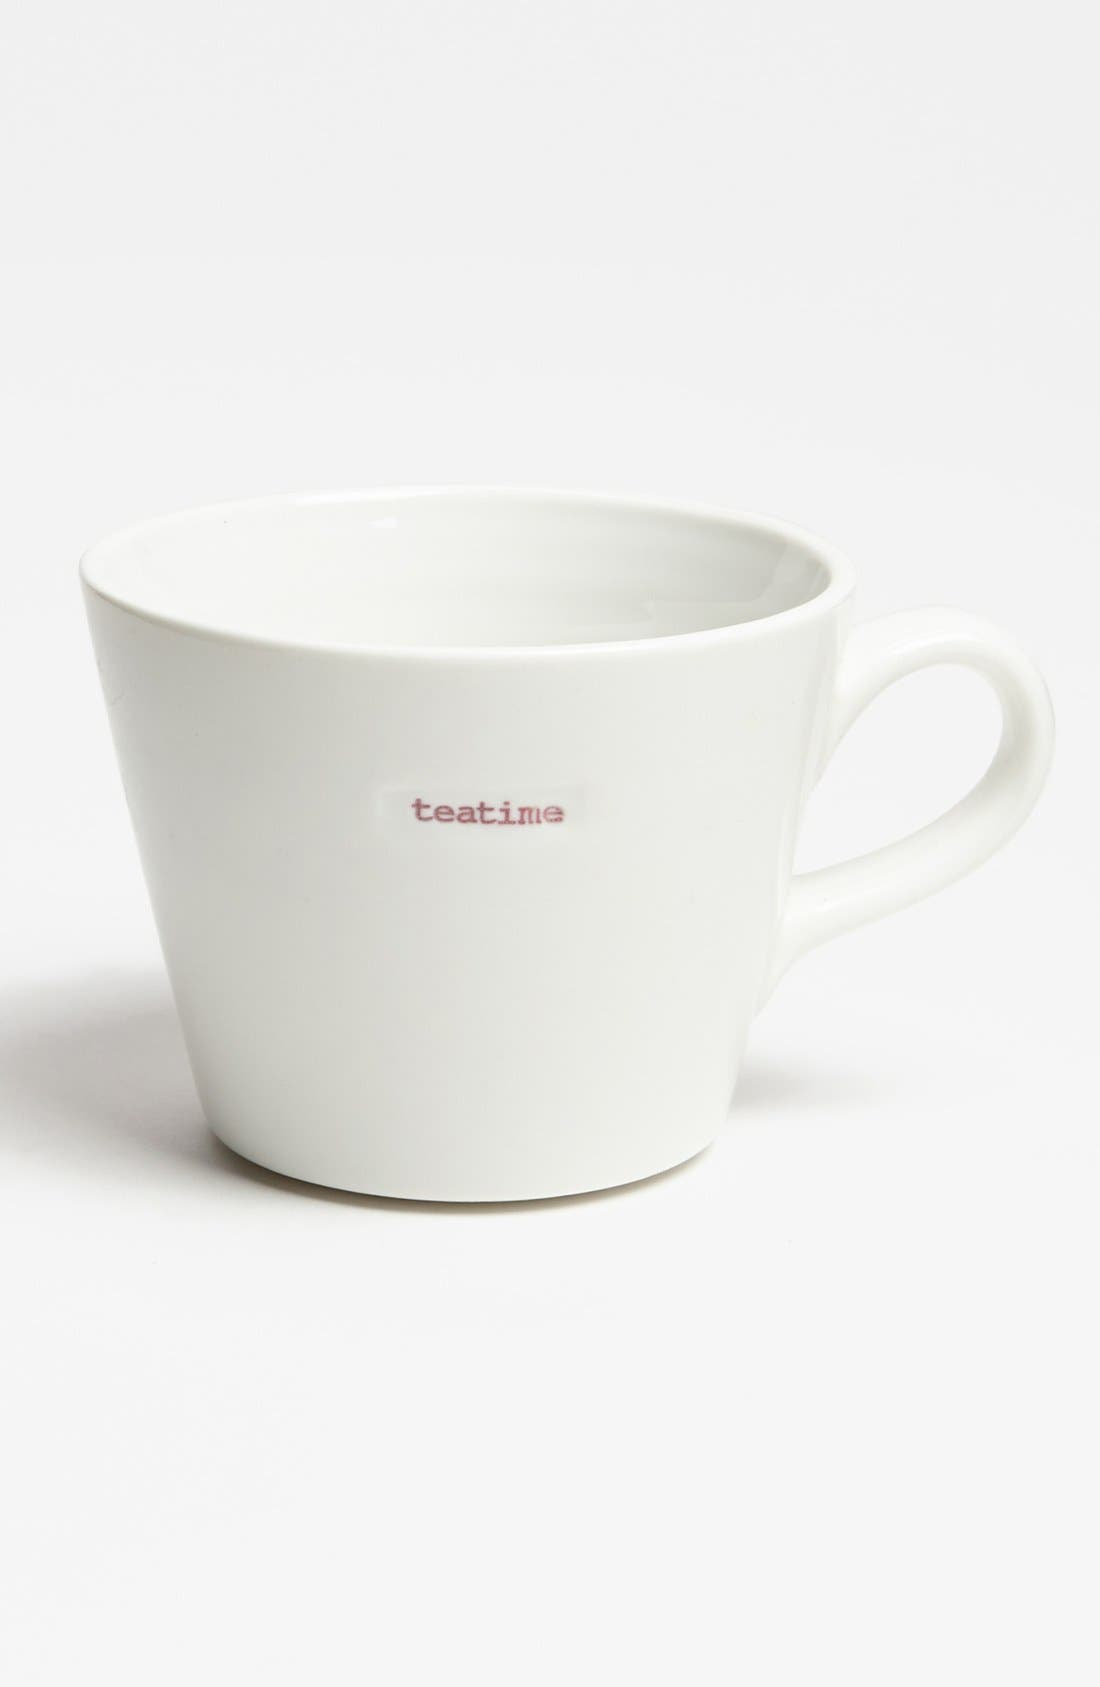 Alternate Image 1 Selected - 'Word Range - Teatime' Porcelain Mug